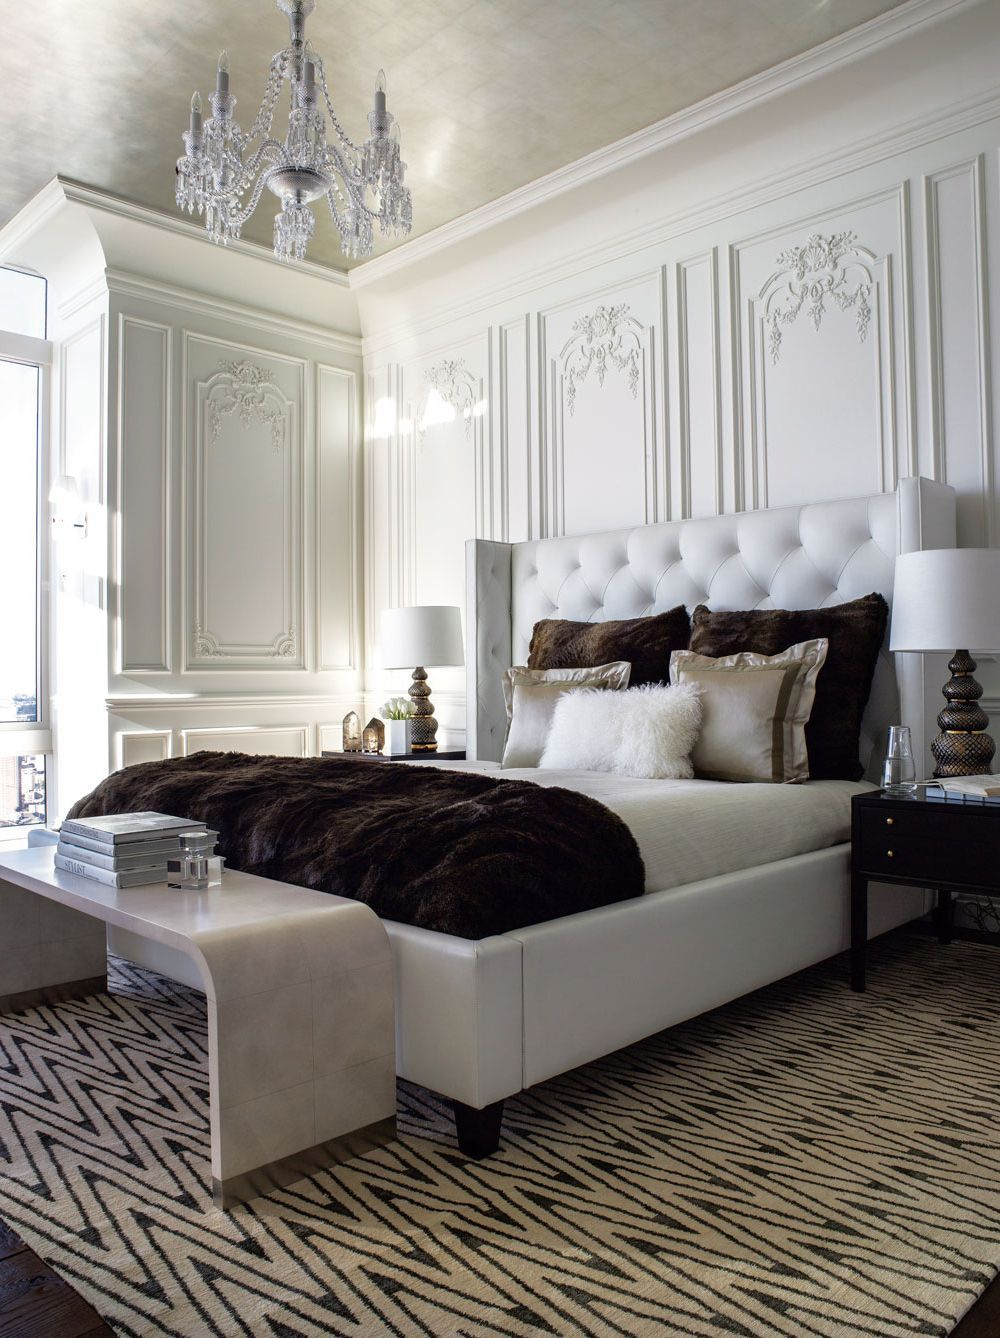 Transitional Bedroom Ideas We Have Included Many Bedroom Designs Currently As Well As Without A Doubt Yo Bedroom Interior Classic Bedroom Luxurious Bedrooms Beautiful transitional master bedroom